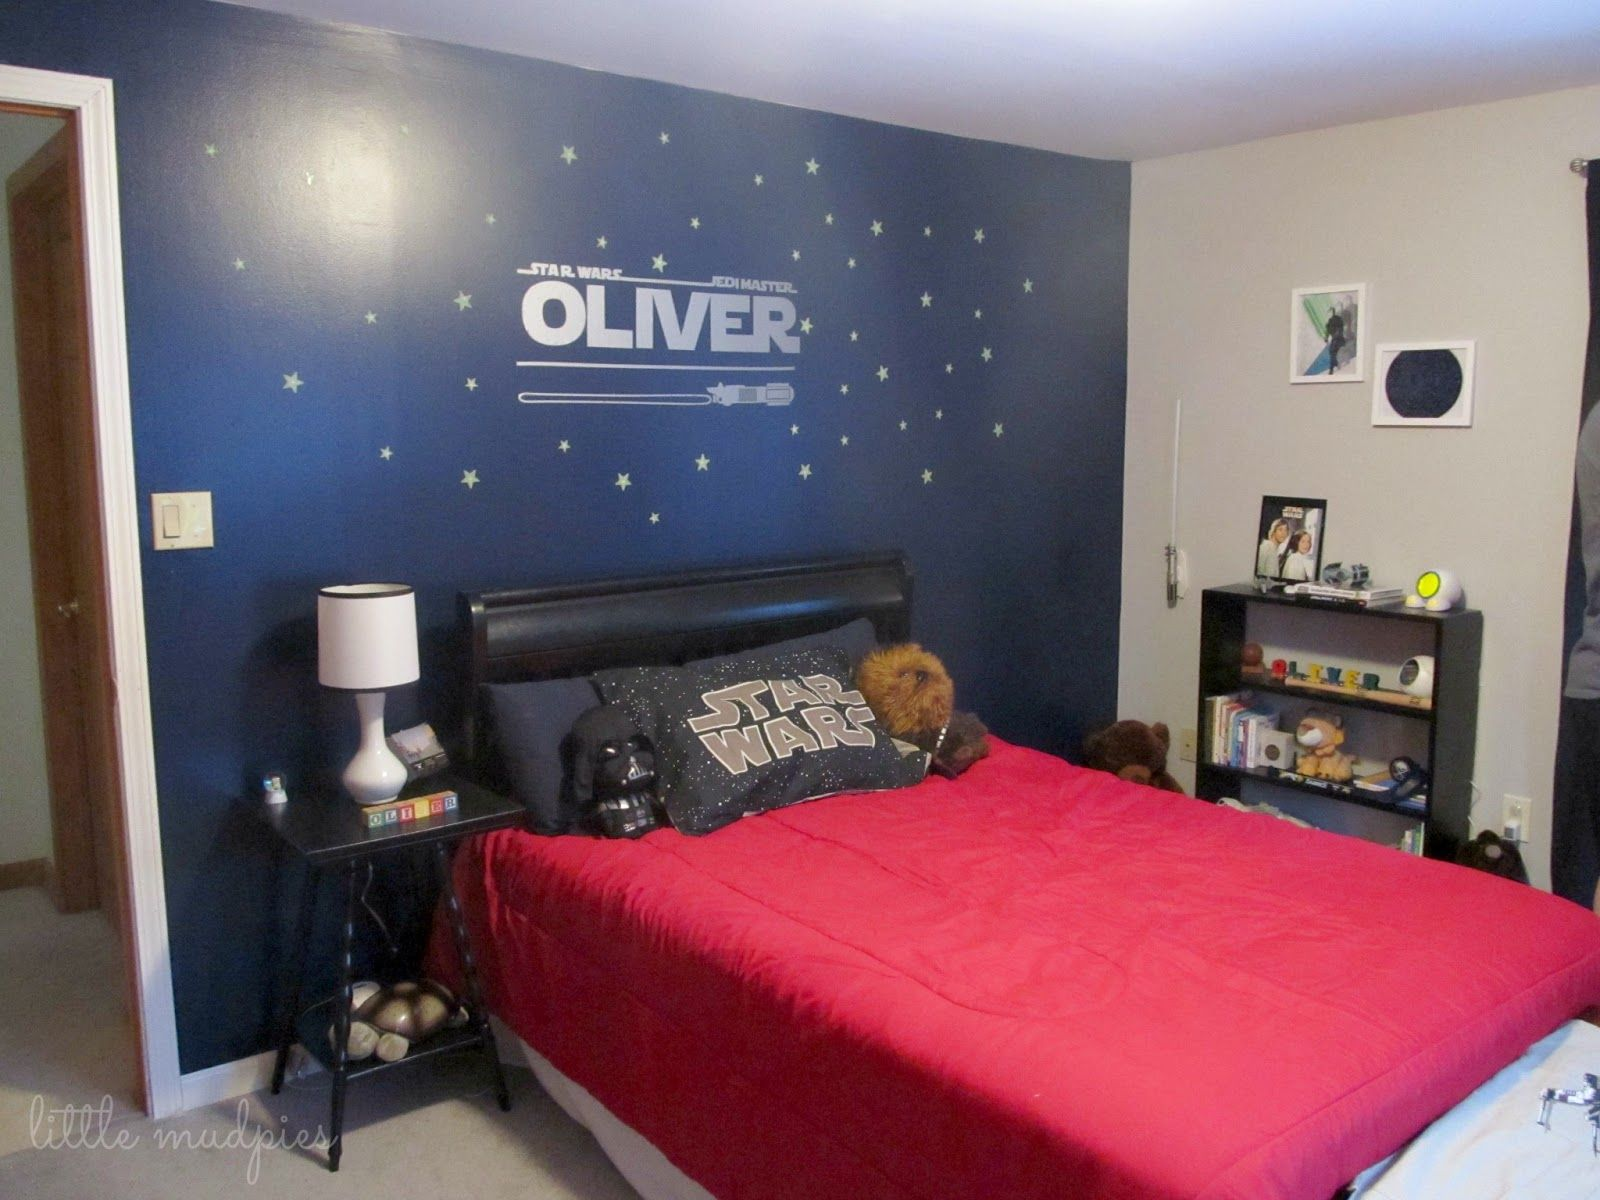 Star wars themed bedroom via little mudpies one dark wall for Bedroom theme ideas